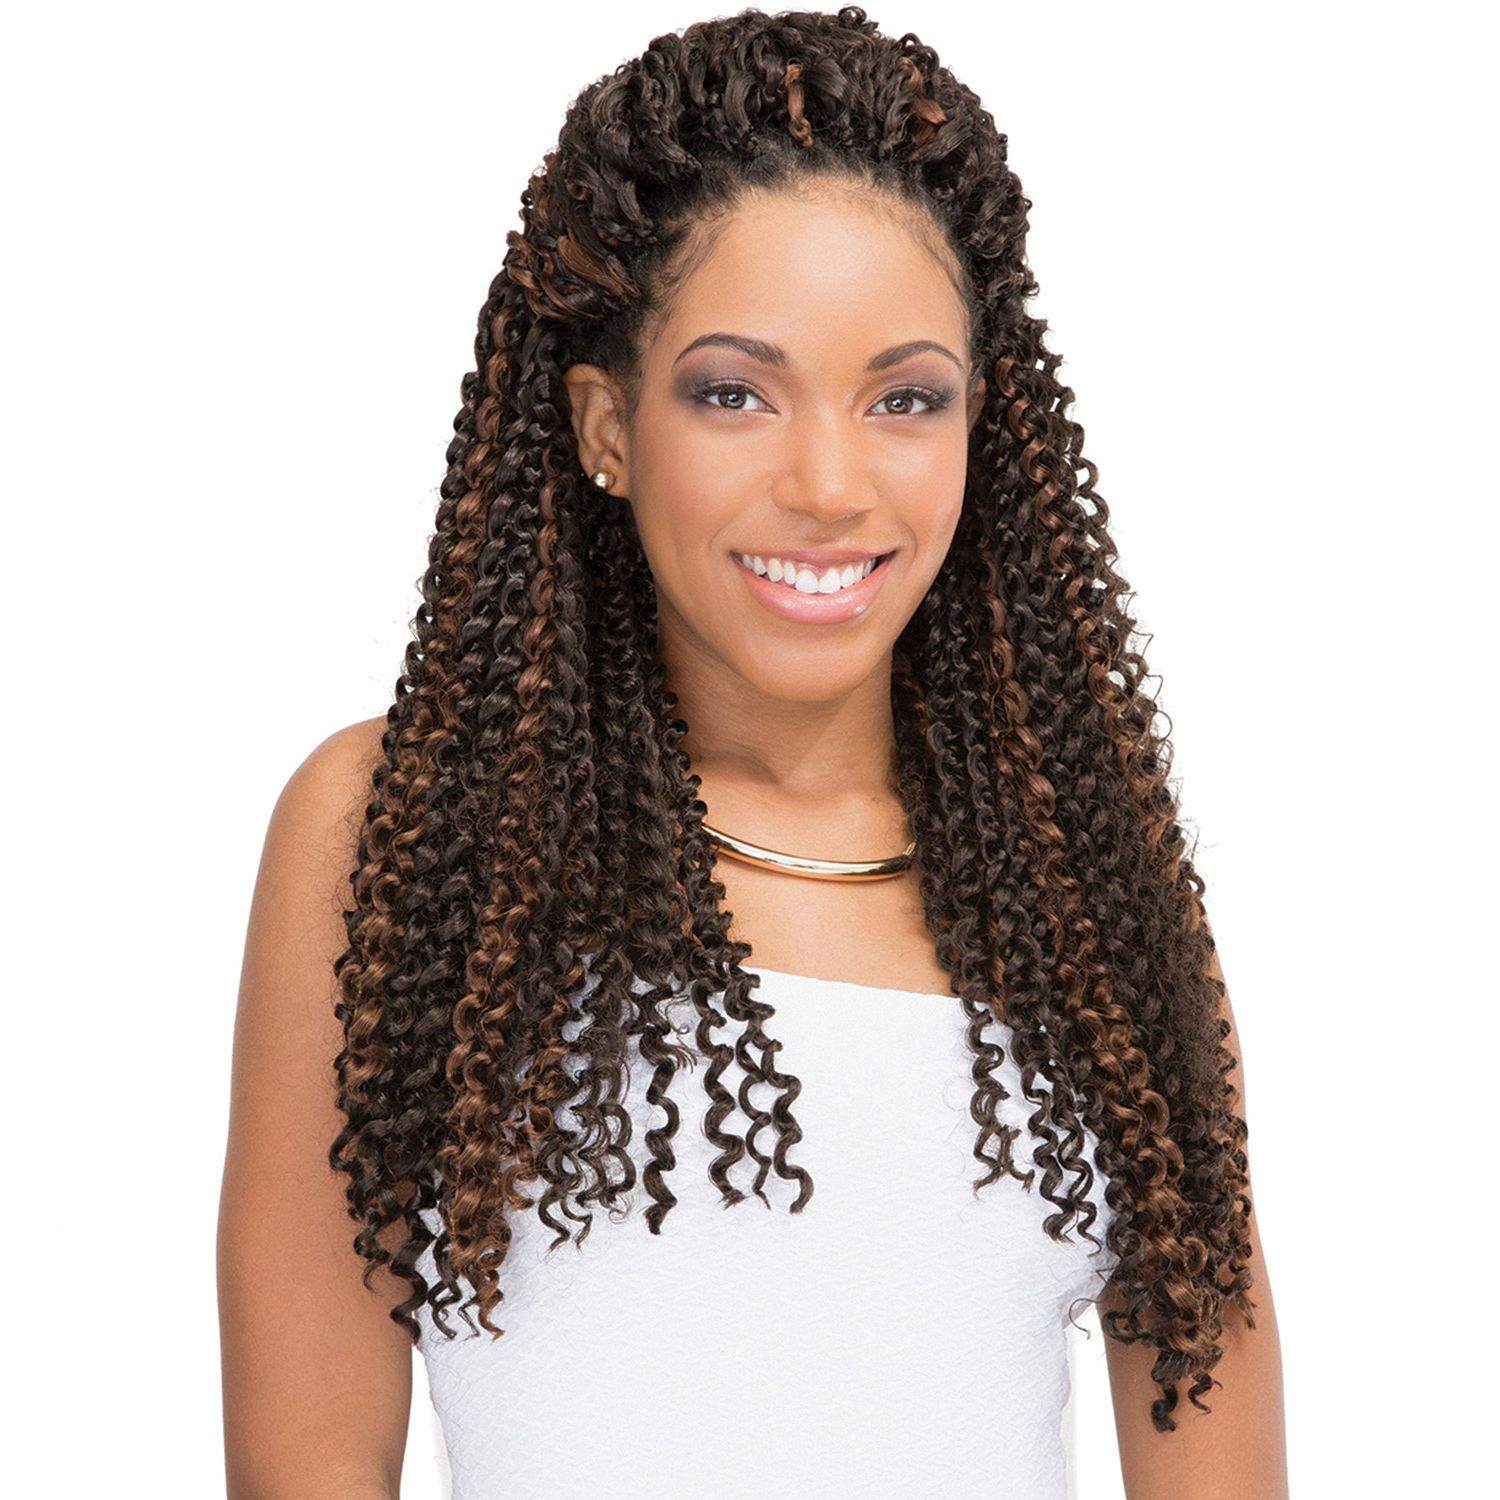 6 packs Passion Twist Crochet Hair #passiontwistshairstyle